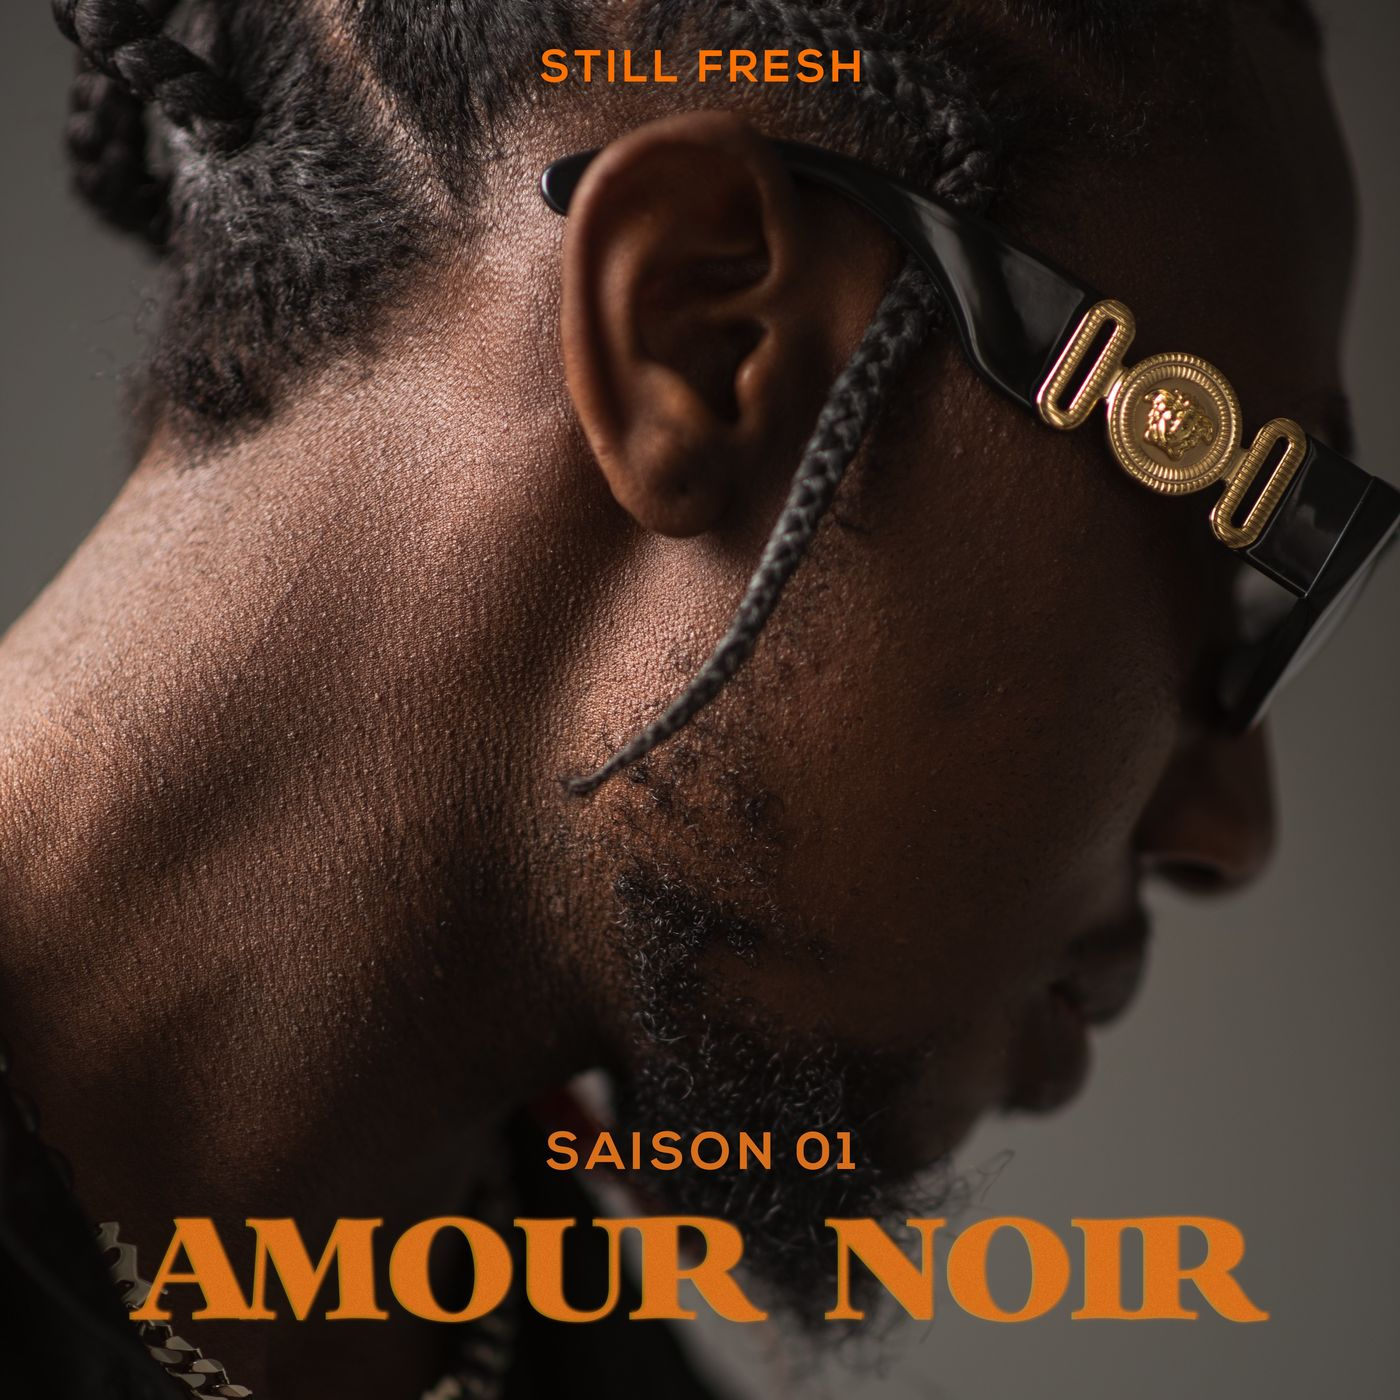 Cover Still Fresh - AMOUR NOIR (SAISON 01) (Explicit) album